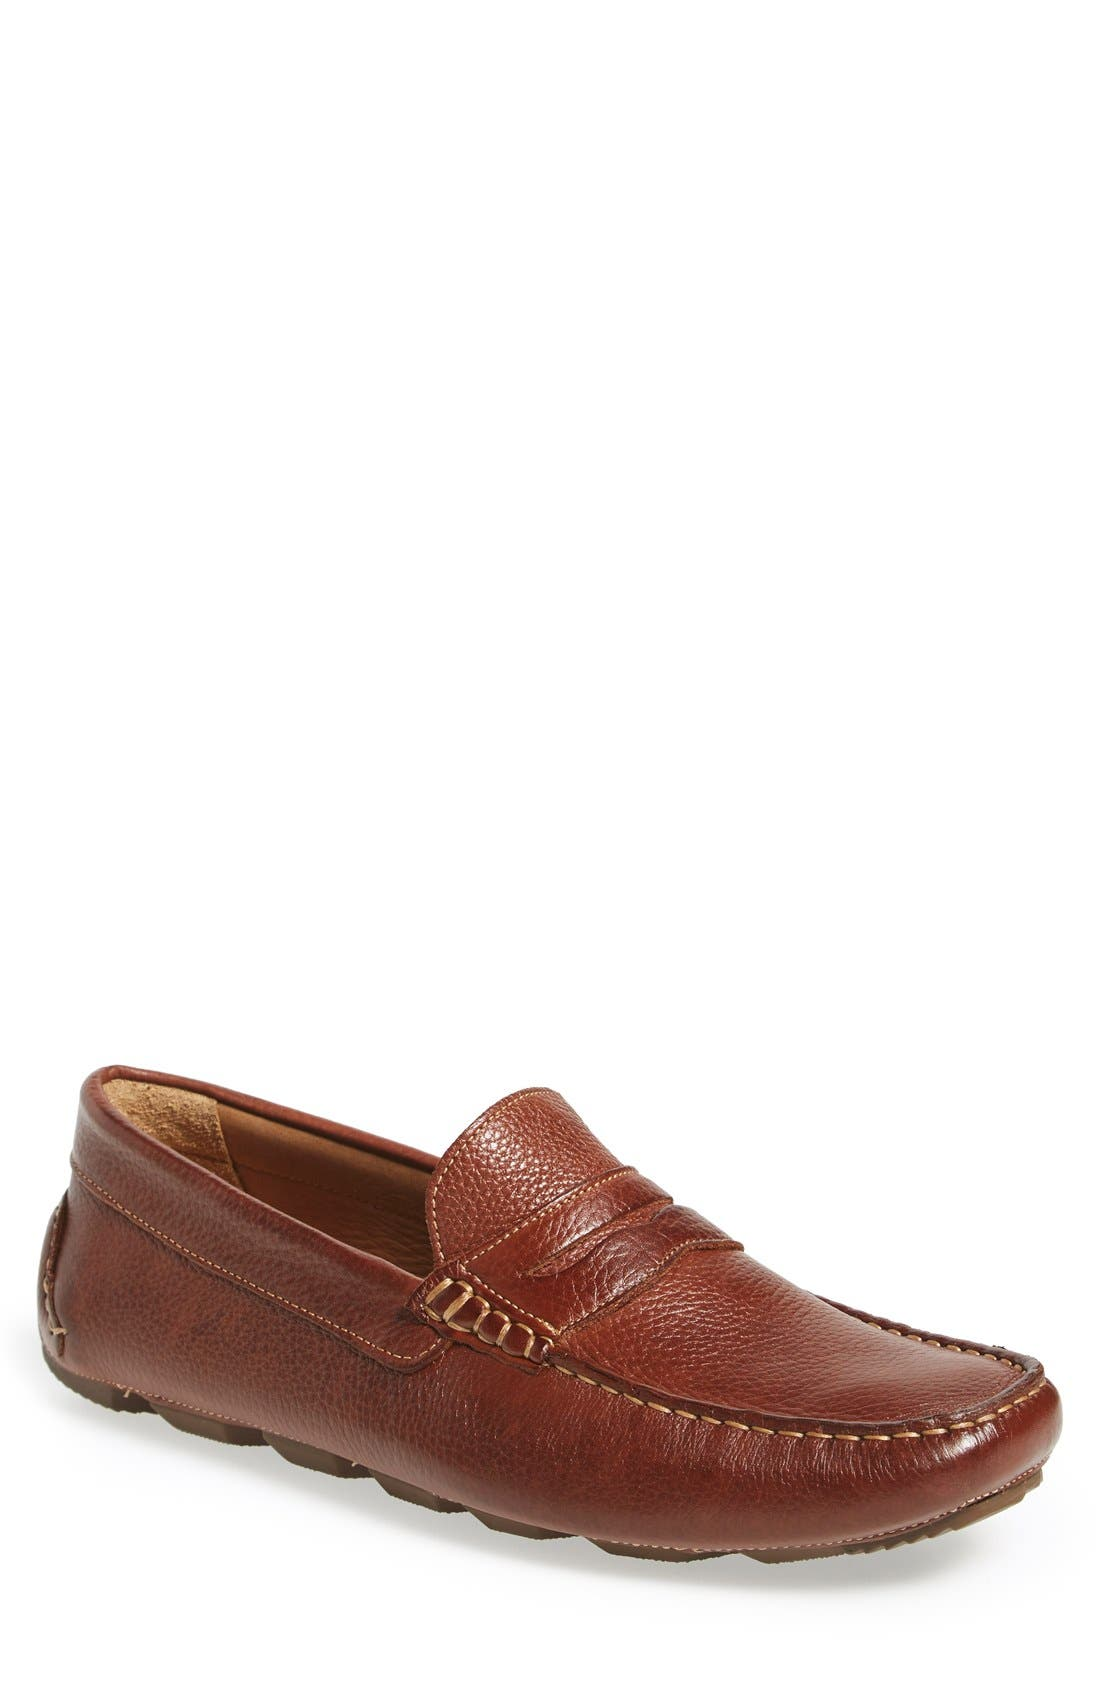 'Bermuda' Penny Loafer,                         Main,                         color, TAN LEATHER